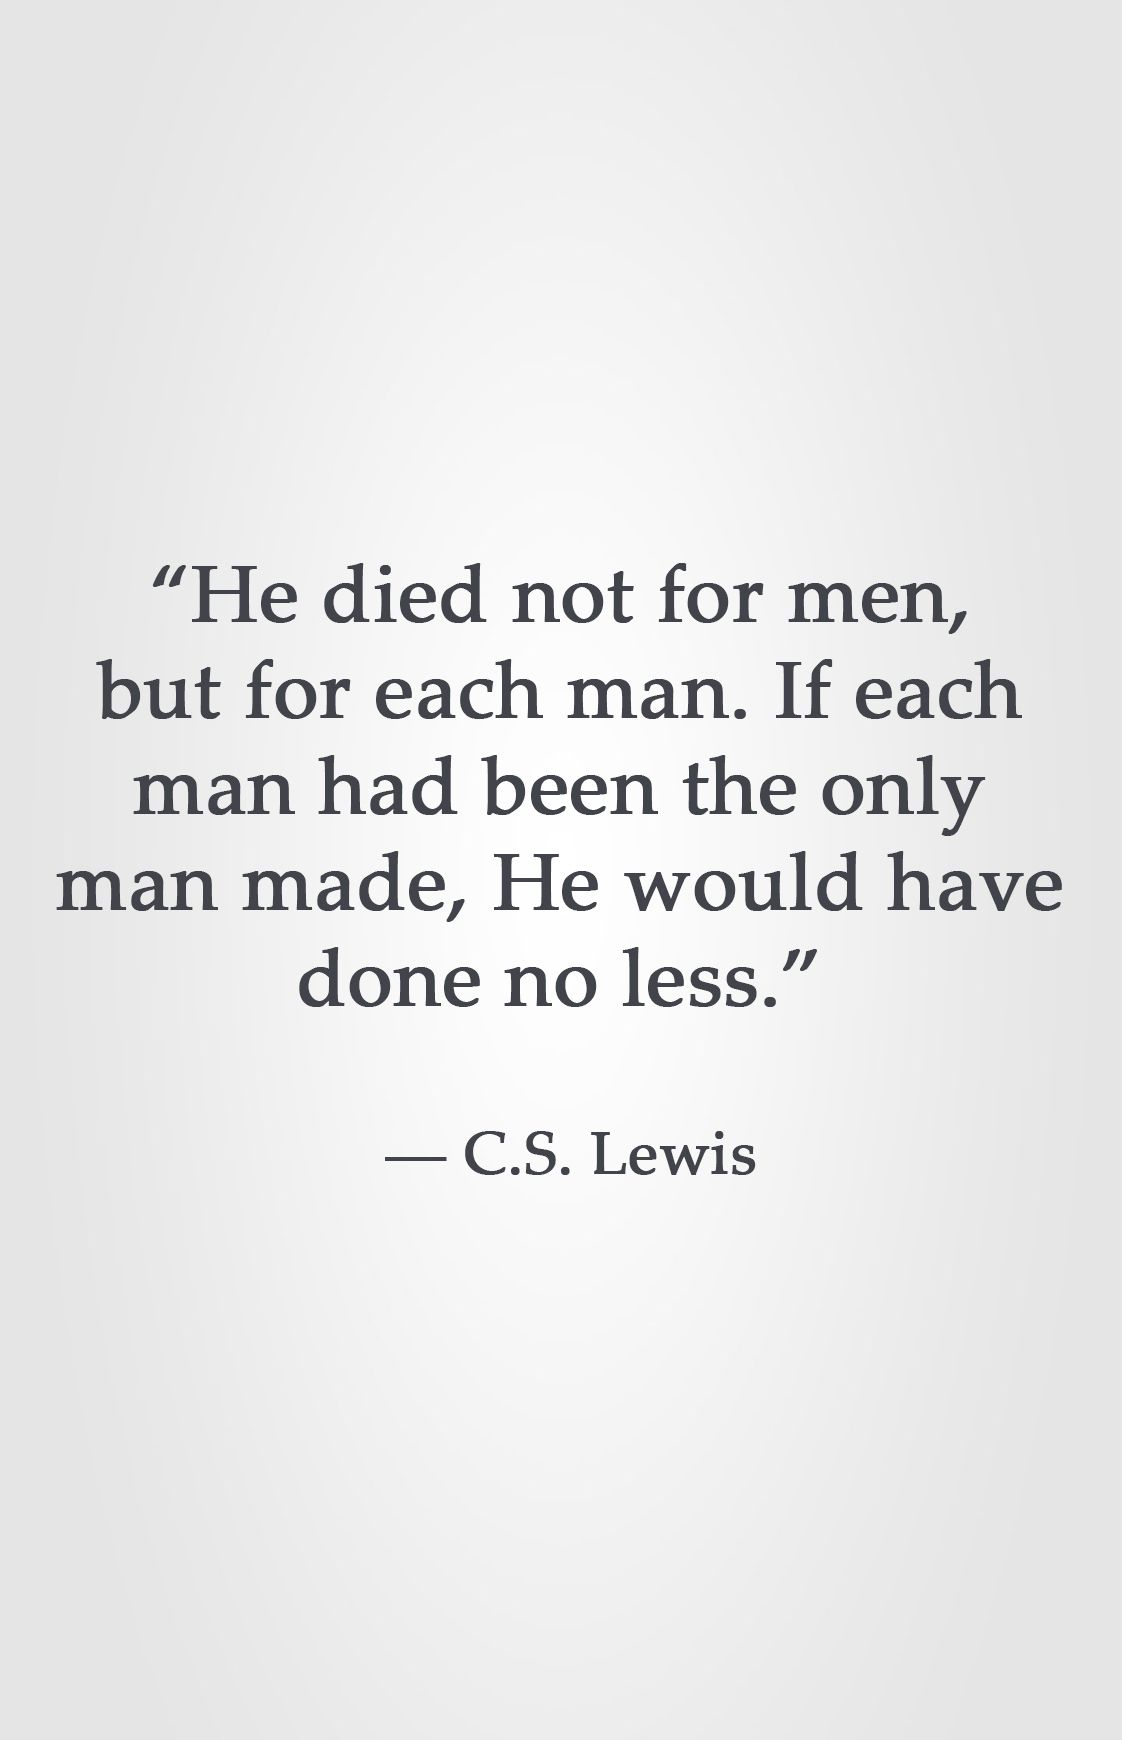 """He died not for men, but for each man. If each man had been the only man made, He would have done no less."" ― C.S. Lewis"